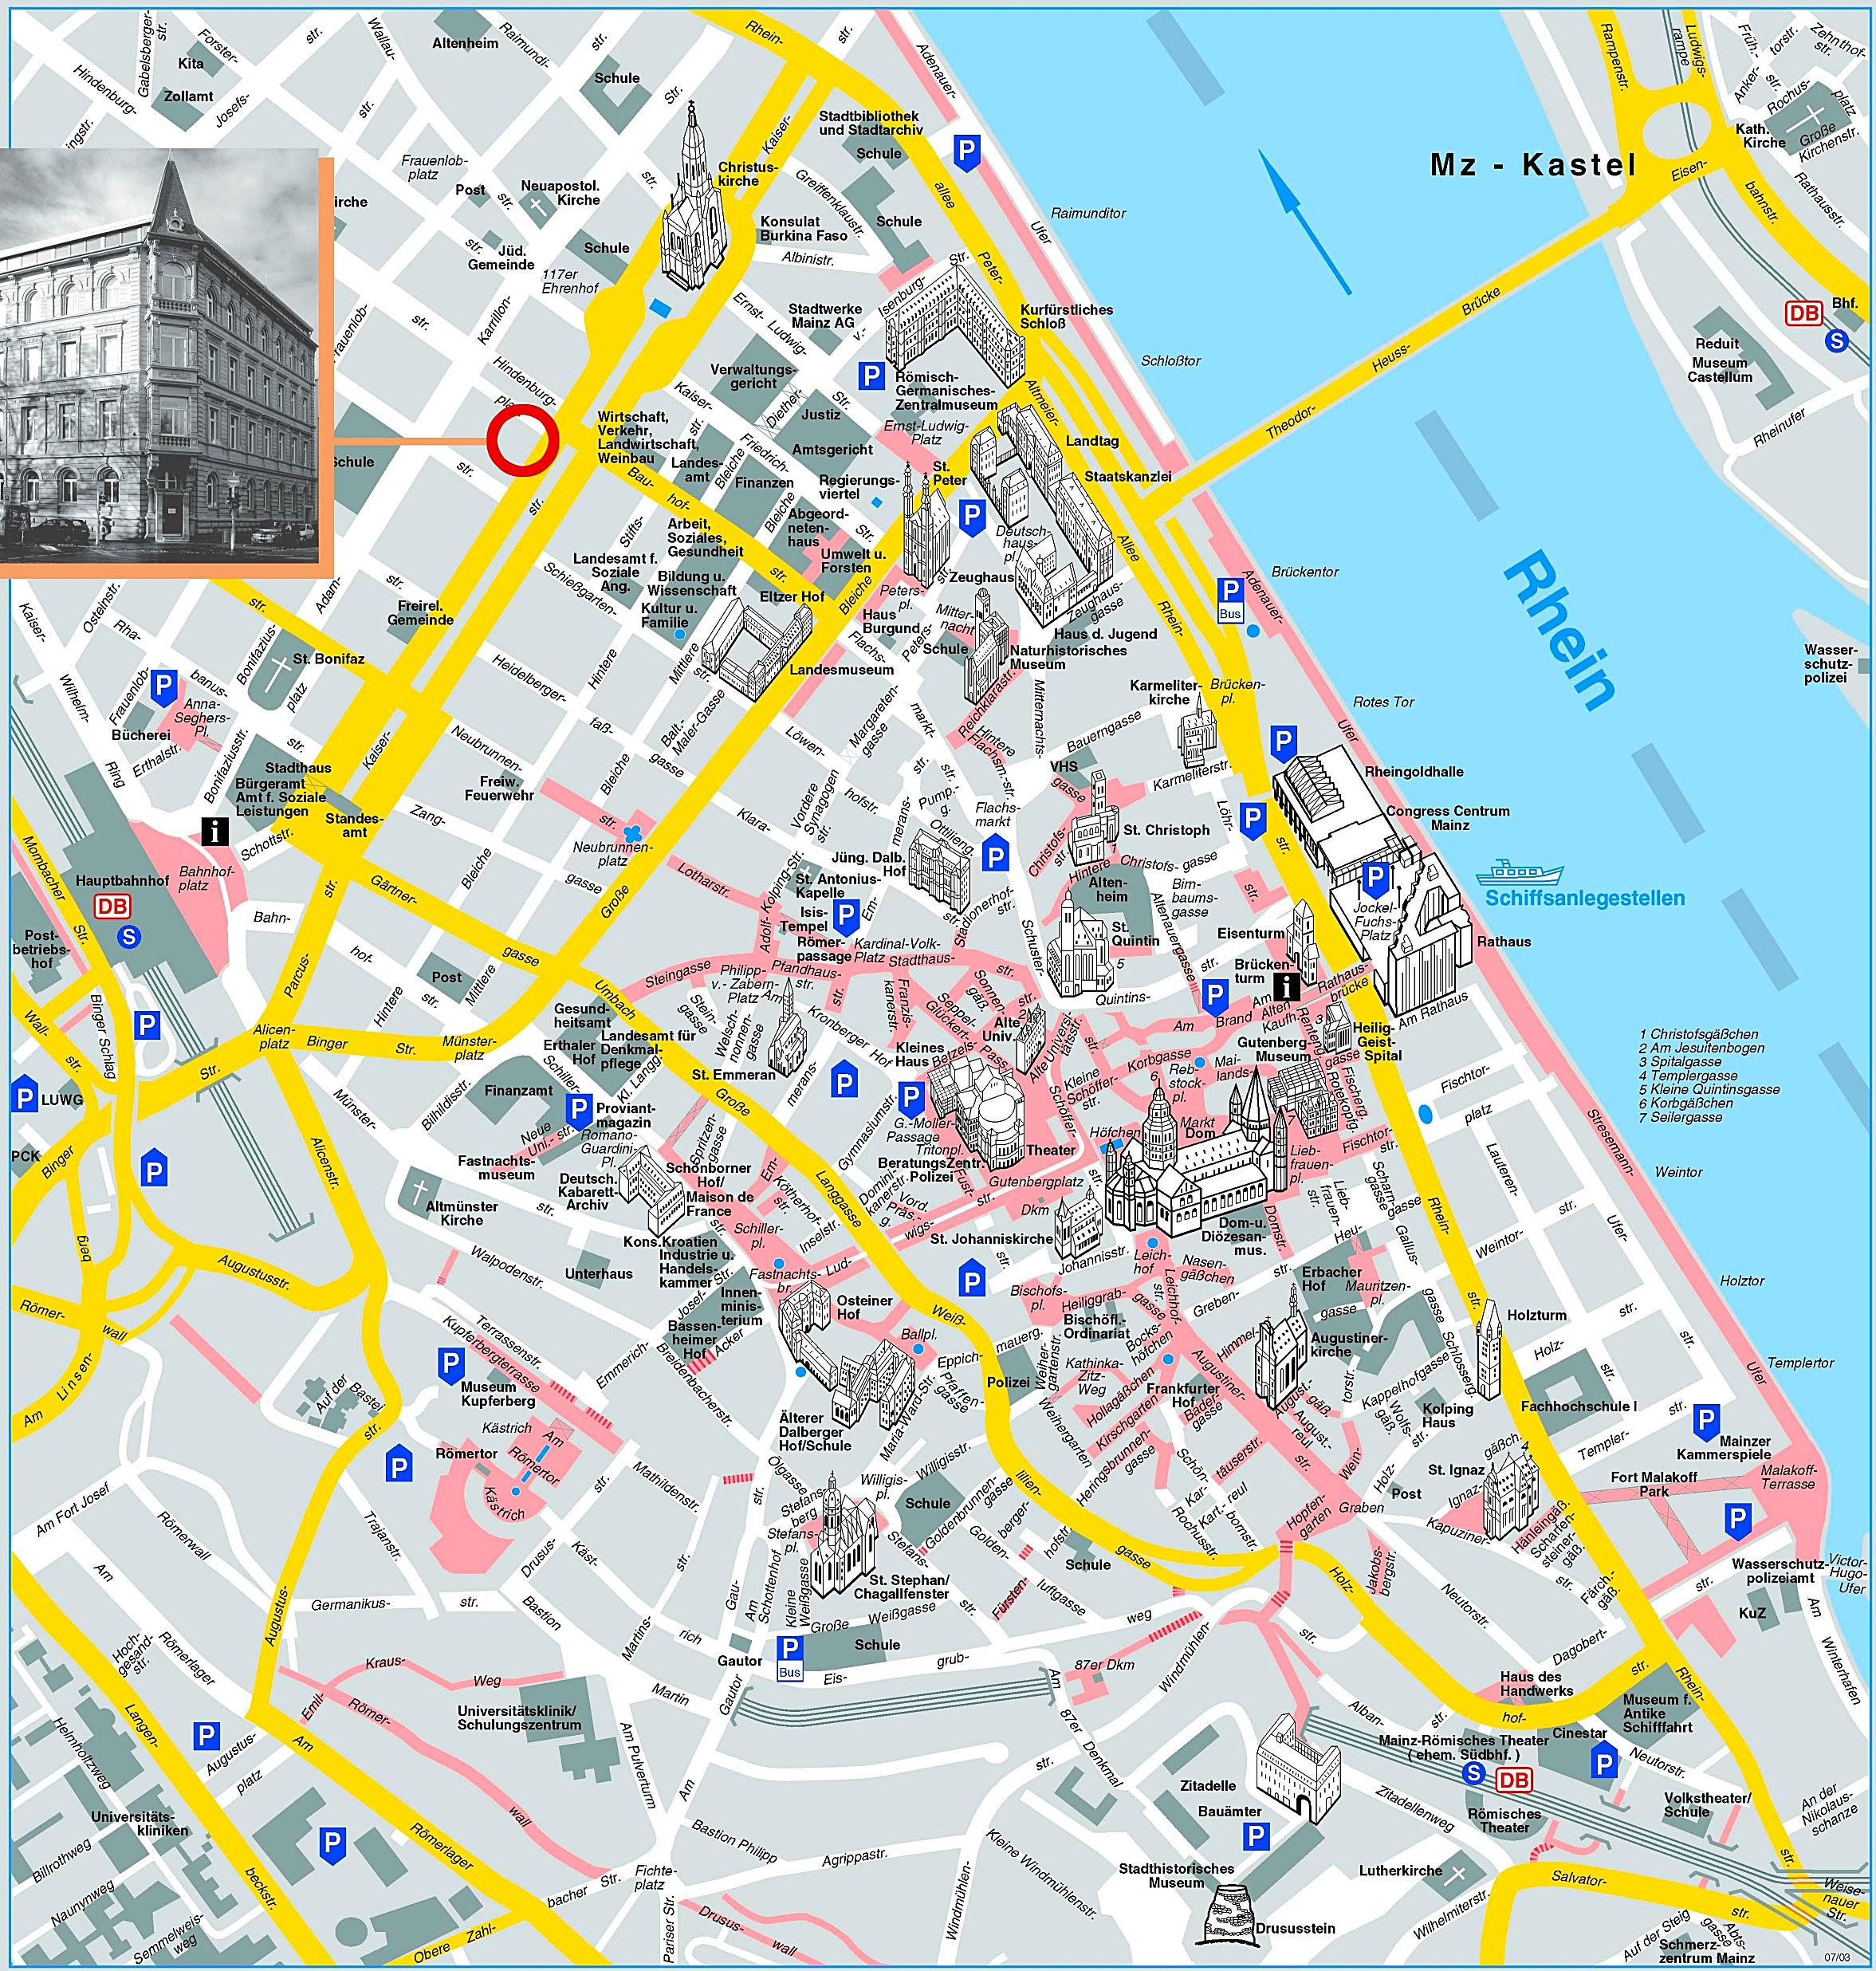 Karlsruhe Maps Large Mainz Maps For Free Download And Print High Resolution And